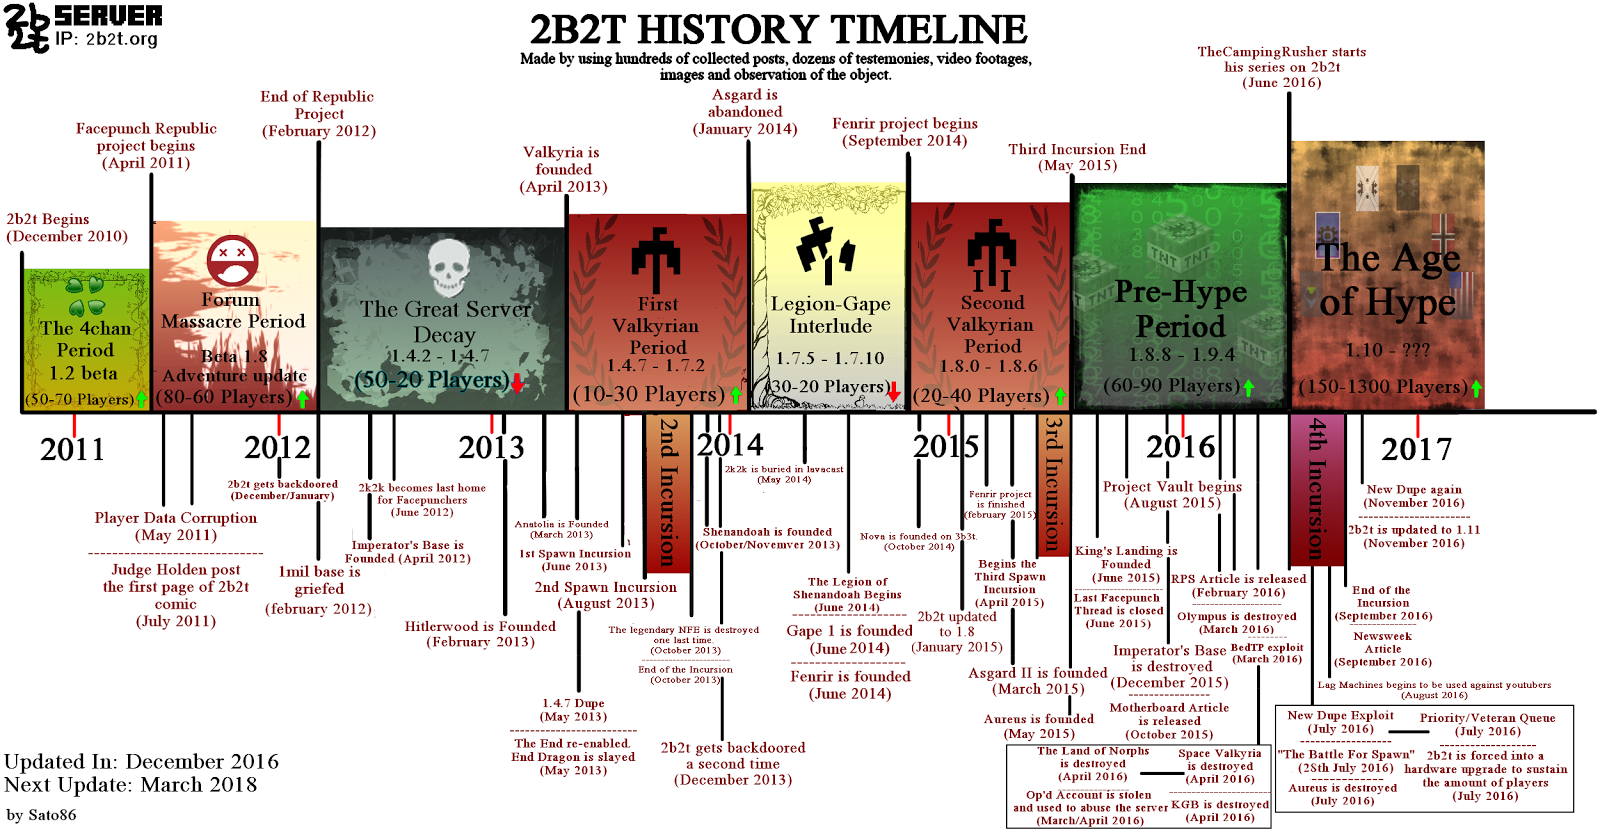 2b2t And Its History 2010 2016 Sato86 The 2b2t Blog